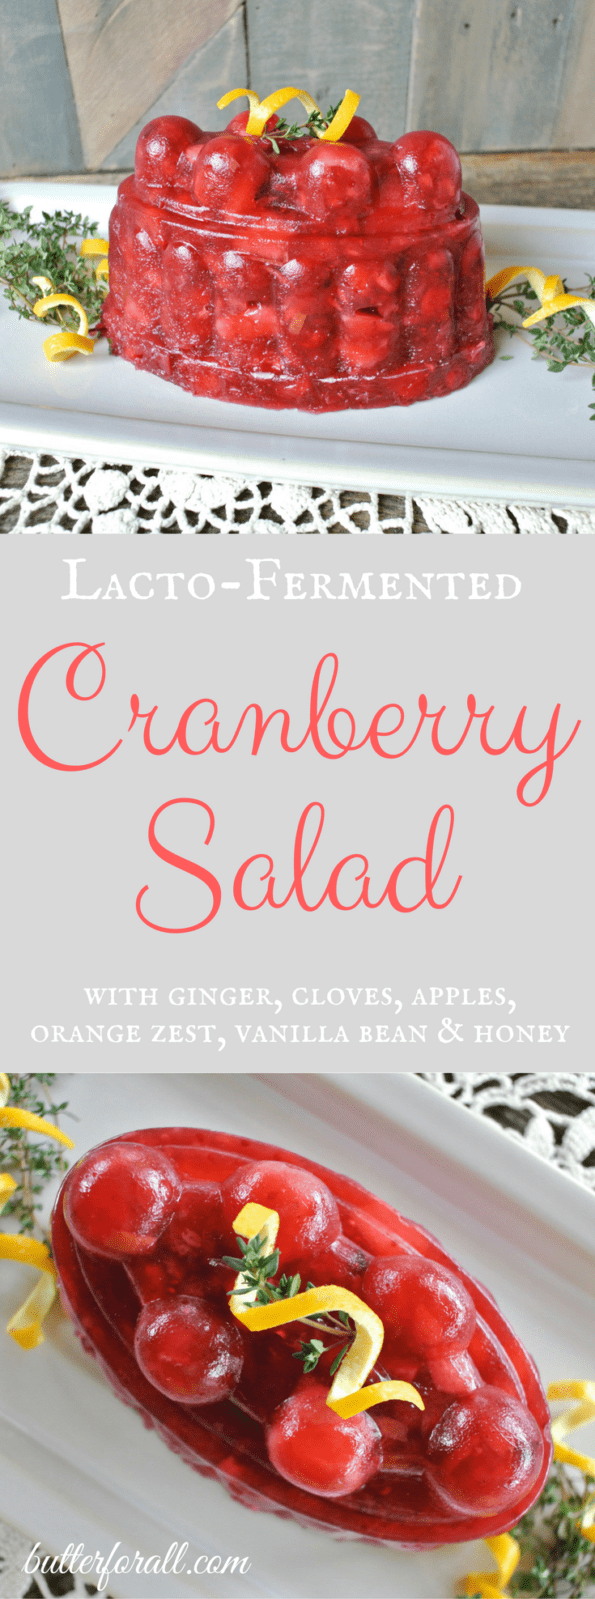 Lacto-Fermented Cranberry Salad will be your new nourishing holiday tradition!